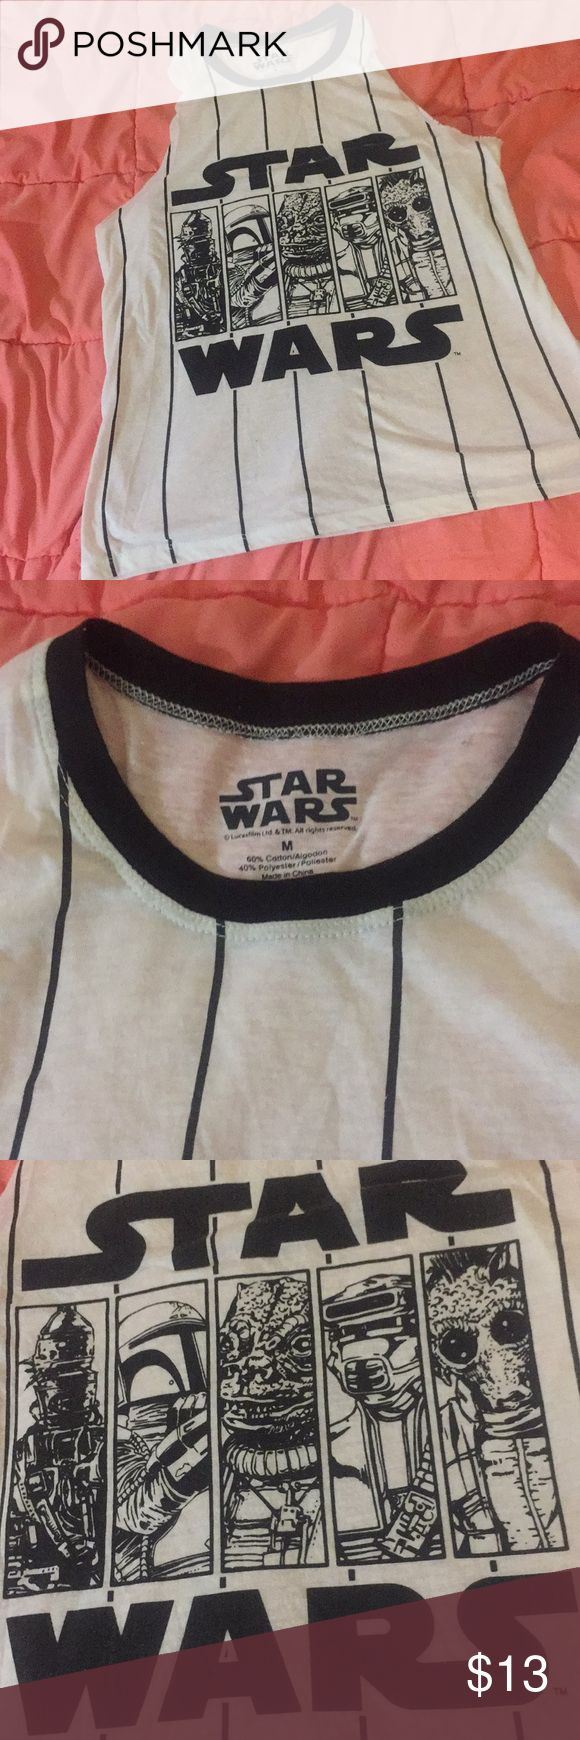 Star Wars Tank Star Wars custom cut tank  Official Star Wars Brand, Size M Vintage look, lightweight soft material   Great used condition, no flaws.  Great for collectors, fans, teens & adults!   Offering a generous bundle deal discount!  Always open to larger bundle deals.  All of my items are perfect condition unless other wise noted. Everything (that needs to be) is washed and steam ironed before shipping. ~ Cassandra ~ Star Wars Tops Tank Tops